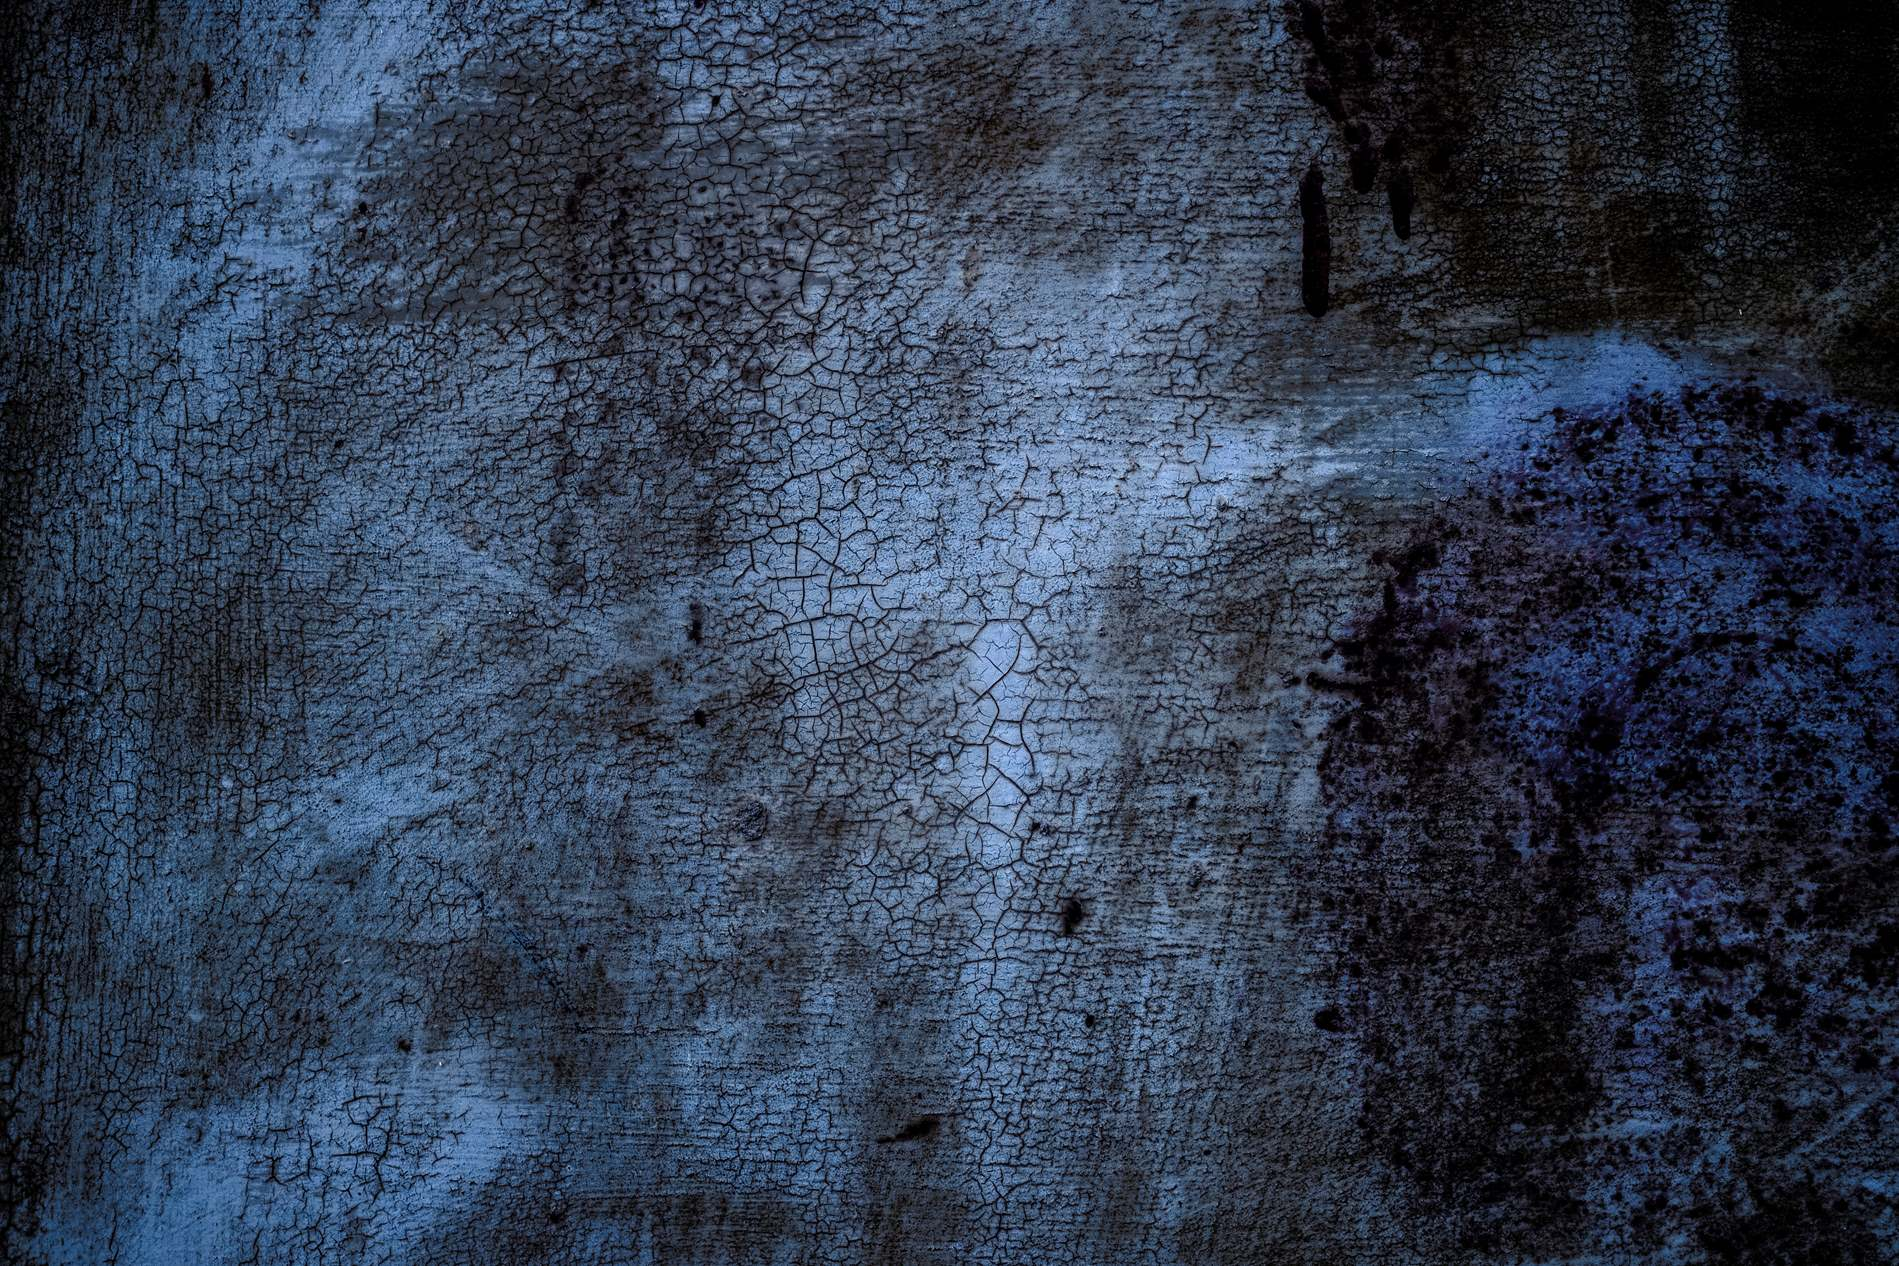 Brown grunge texture background photohdx - Dark Horror Blue Background Photohdx